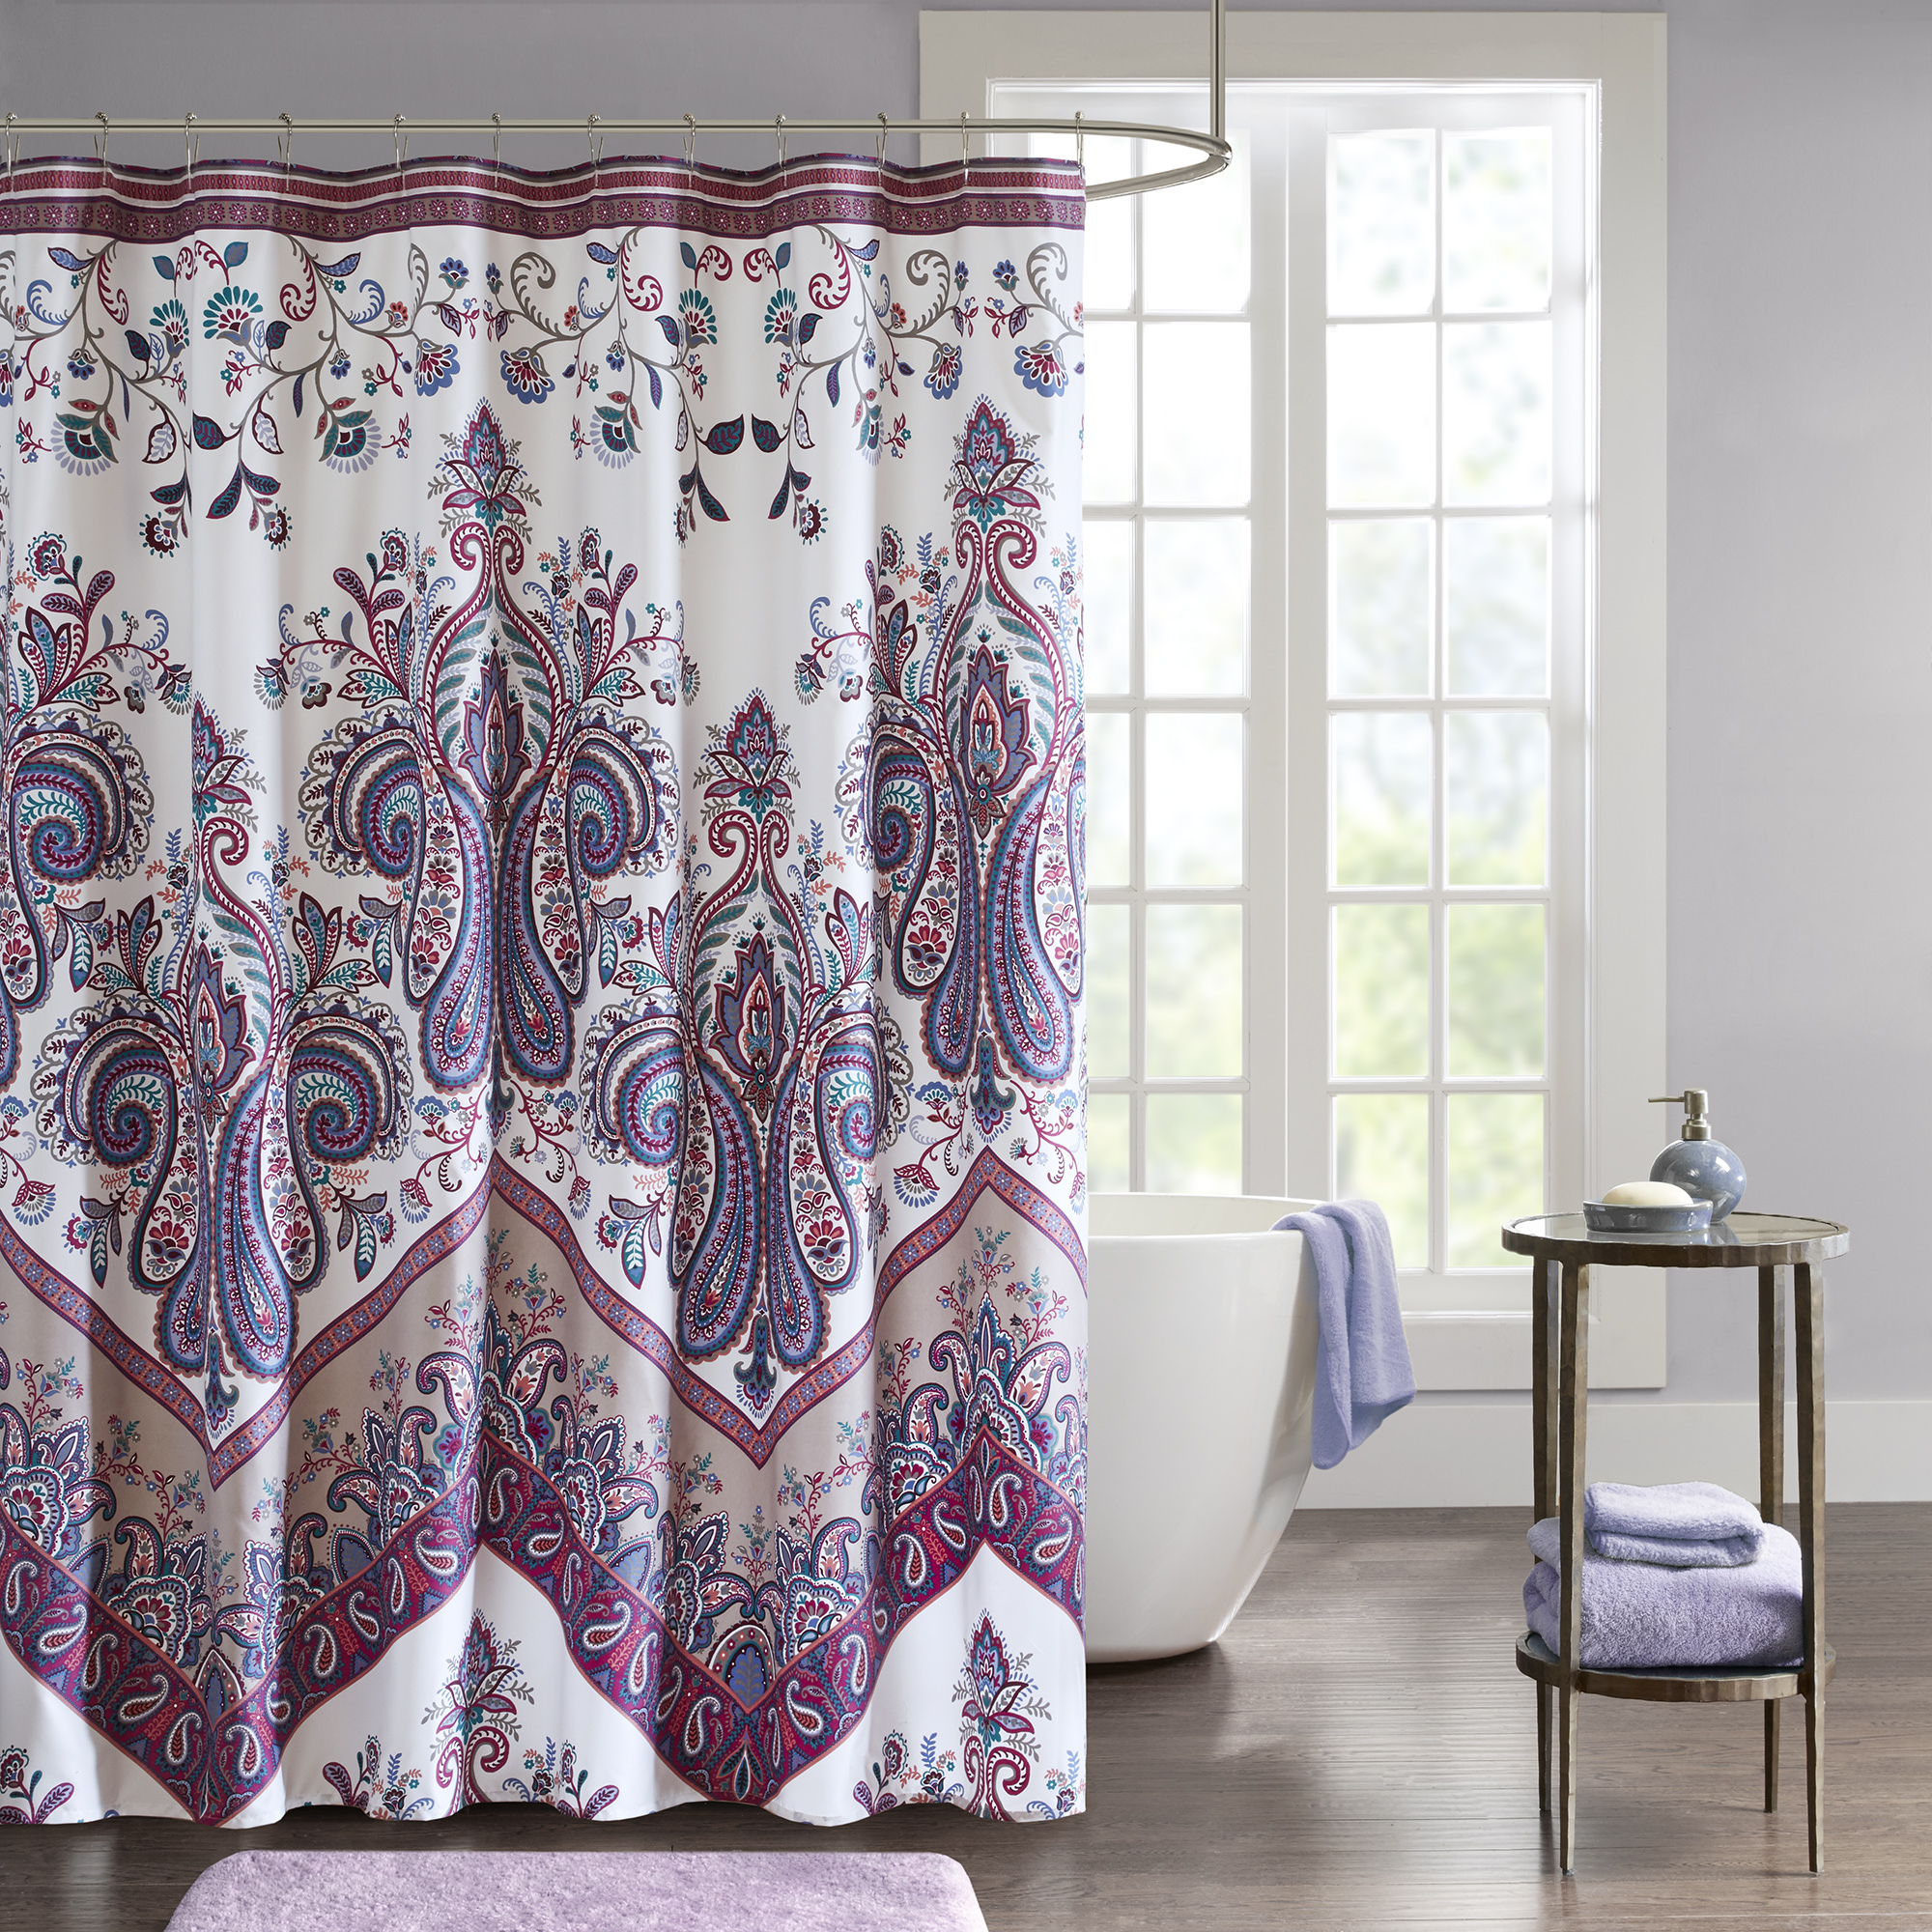 Home Essence Apartment Allura Printed Shower Curtain